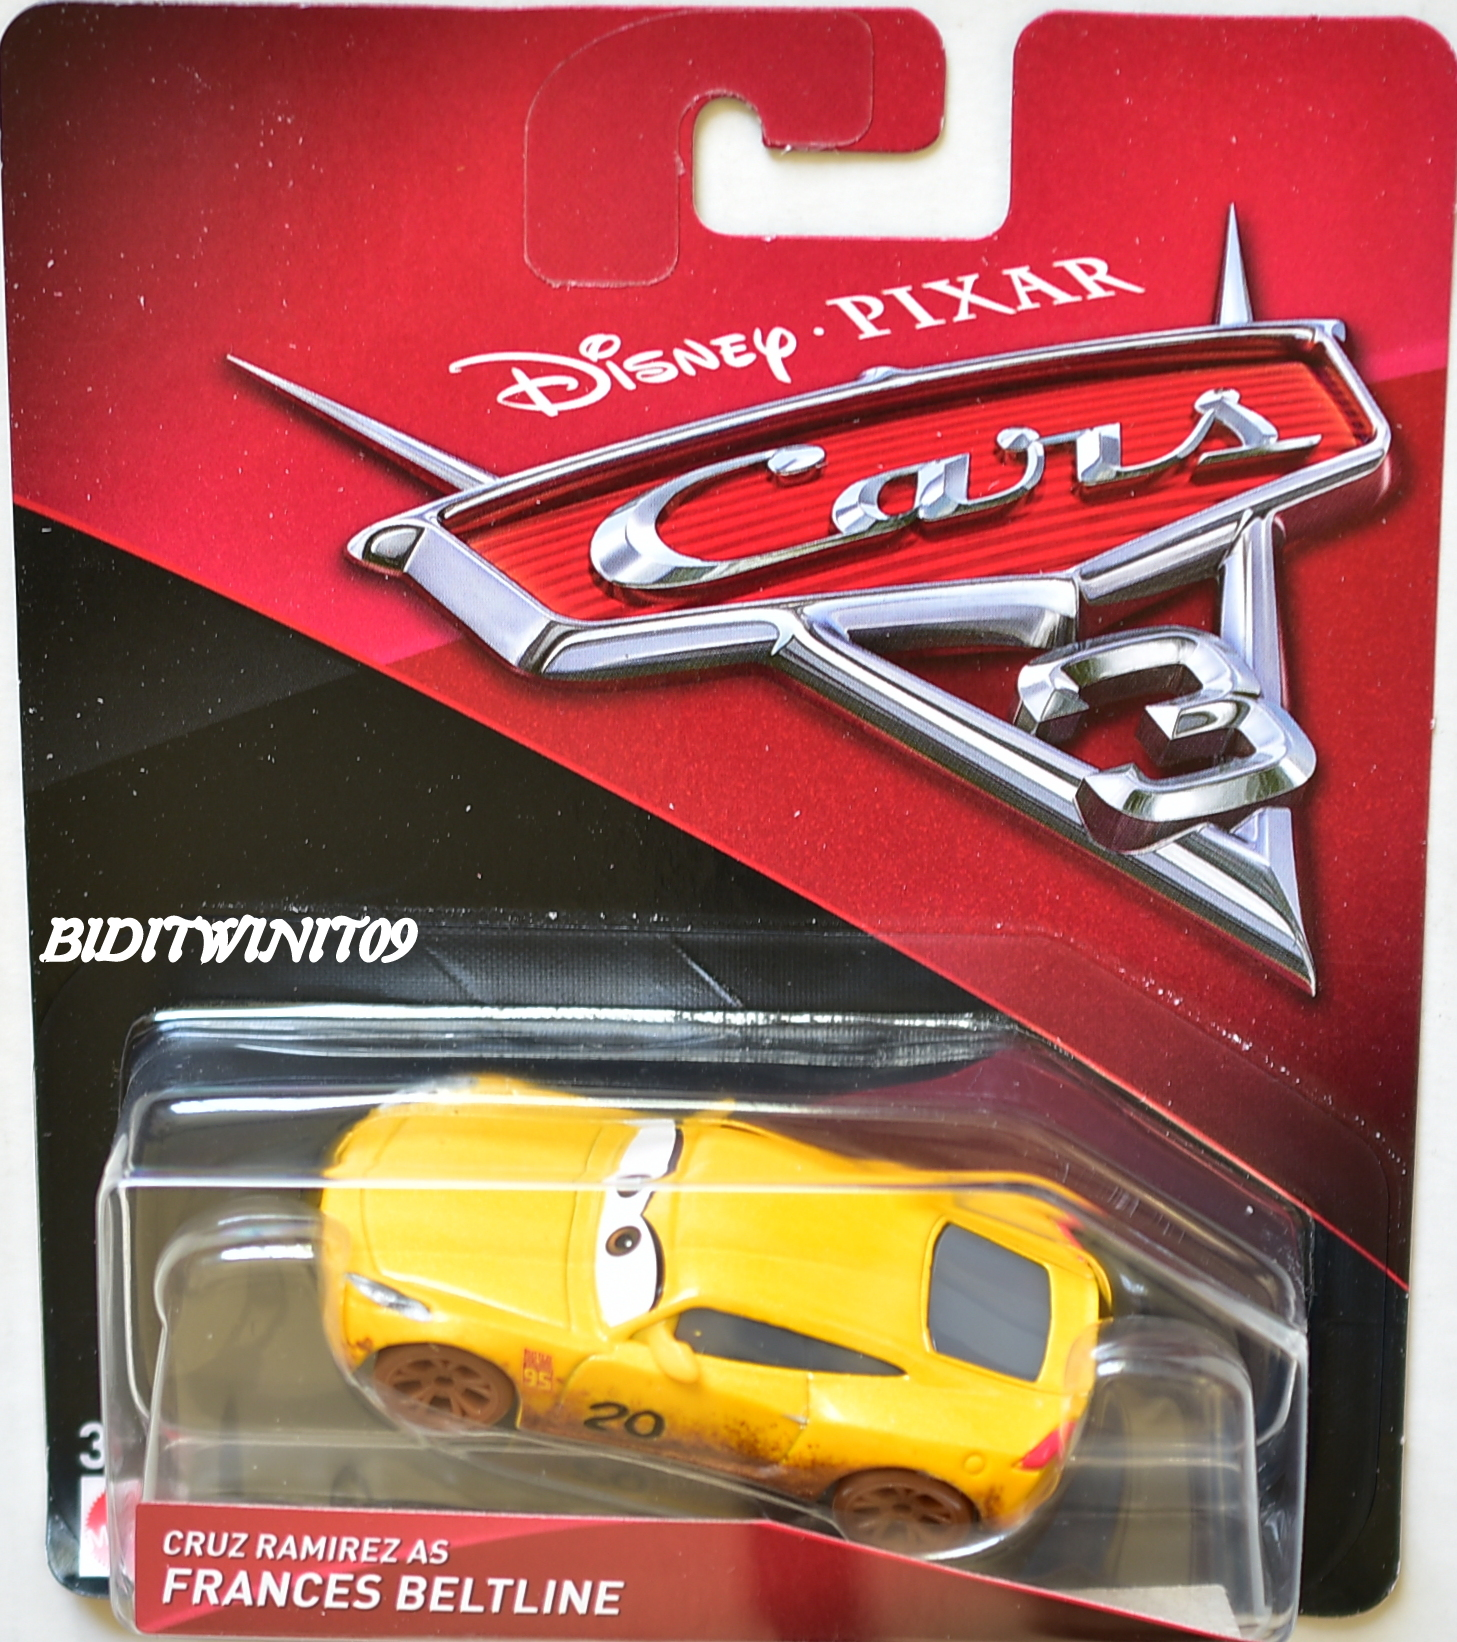 DISNEY PIXAR CARS 3 2017 CRUZ RAMIREZ AS FRANCES BELTLINE YELLOW